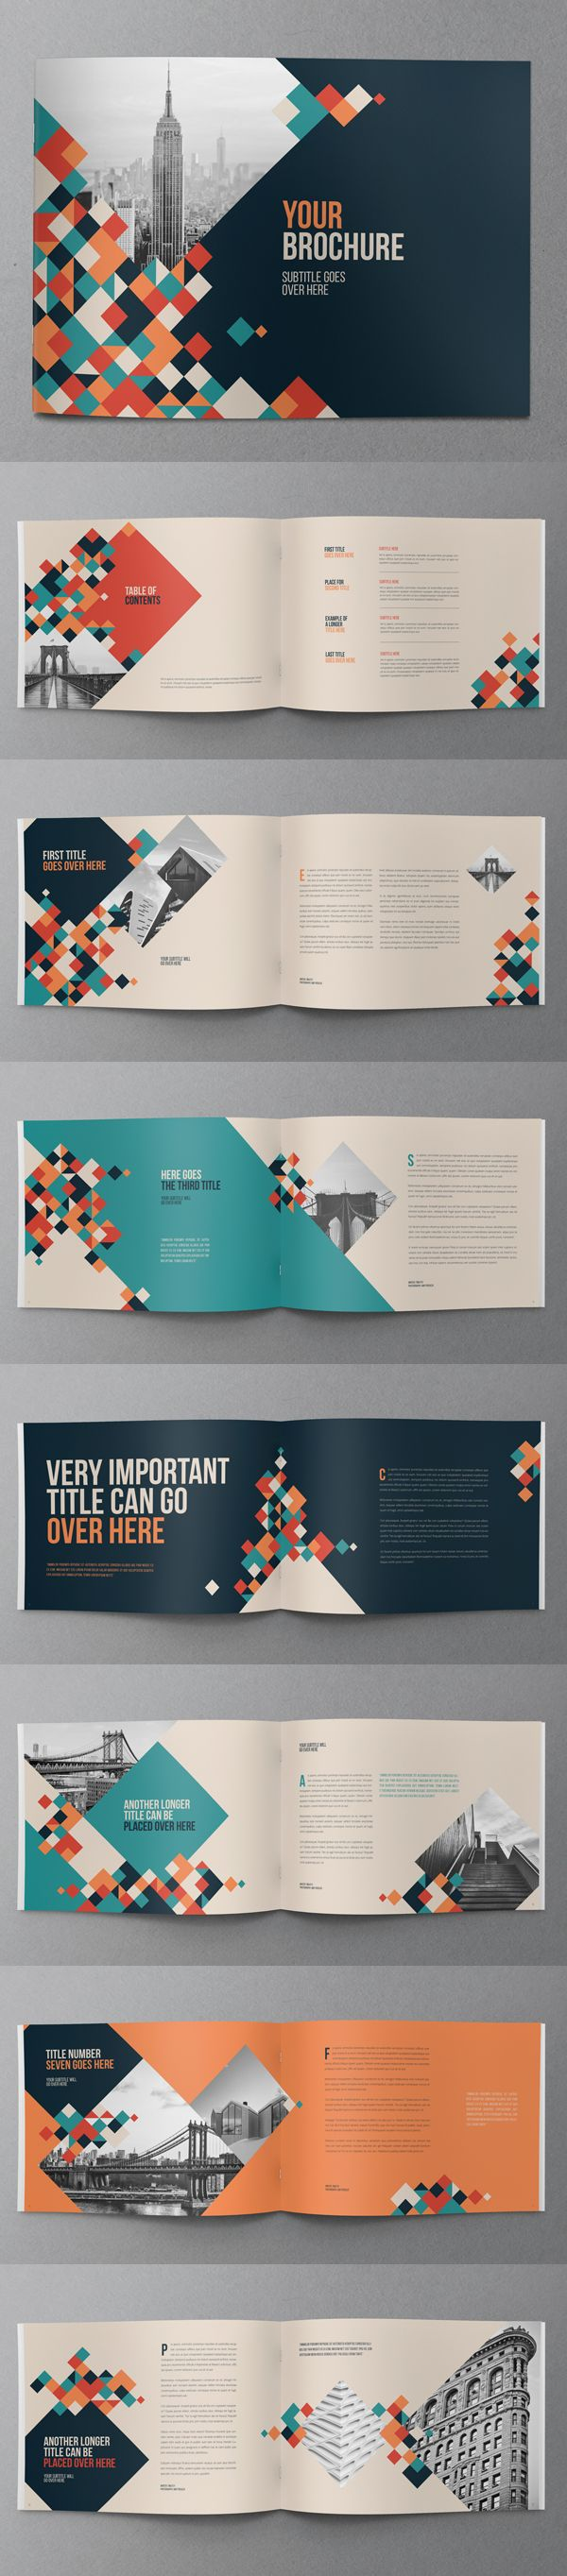 Creative Colorful Squares Brochure Design #booklet #brochuredesign…